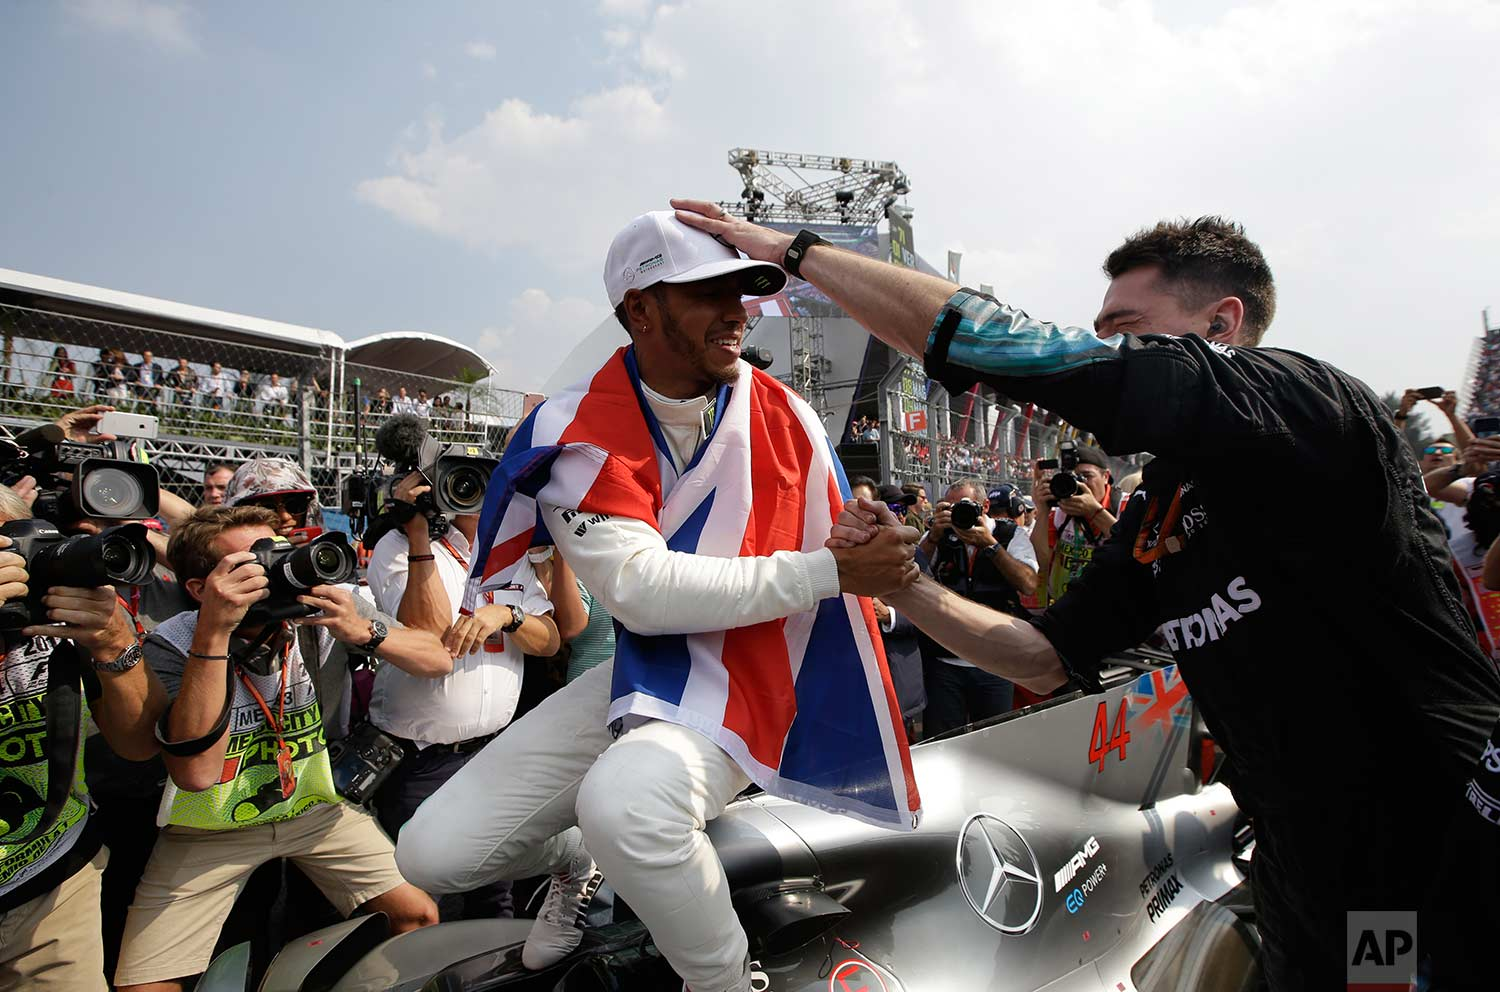 British driver Lewis Hamilton celebrates wining his fourth Formula One championship with a member of his team after the Mexican Formula One Grand Prix auto race at the Hermanos Rodriguez racetrack in Mexico City, Sunday, Oct. 29, 2017. (AP Photo/Moises Castillo)